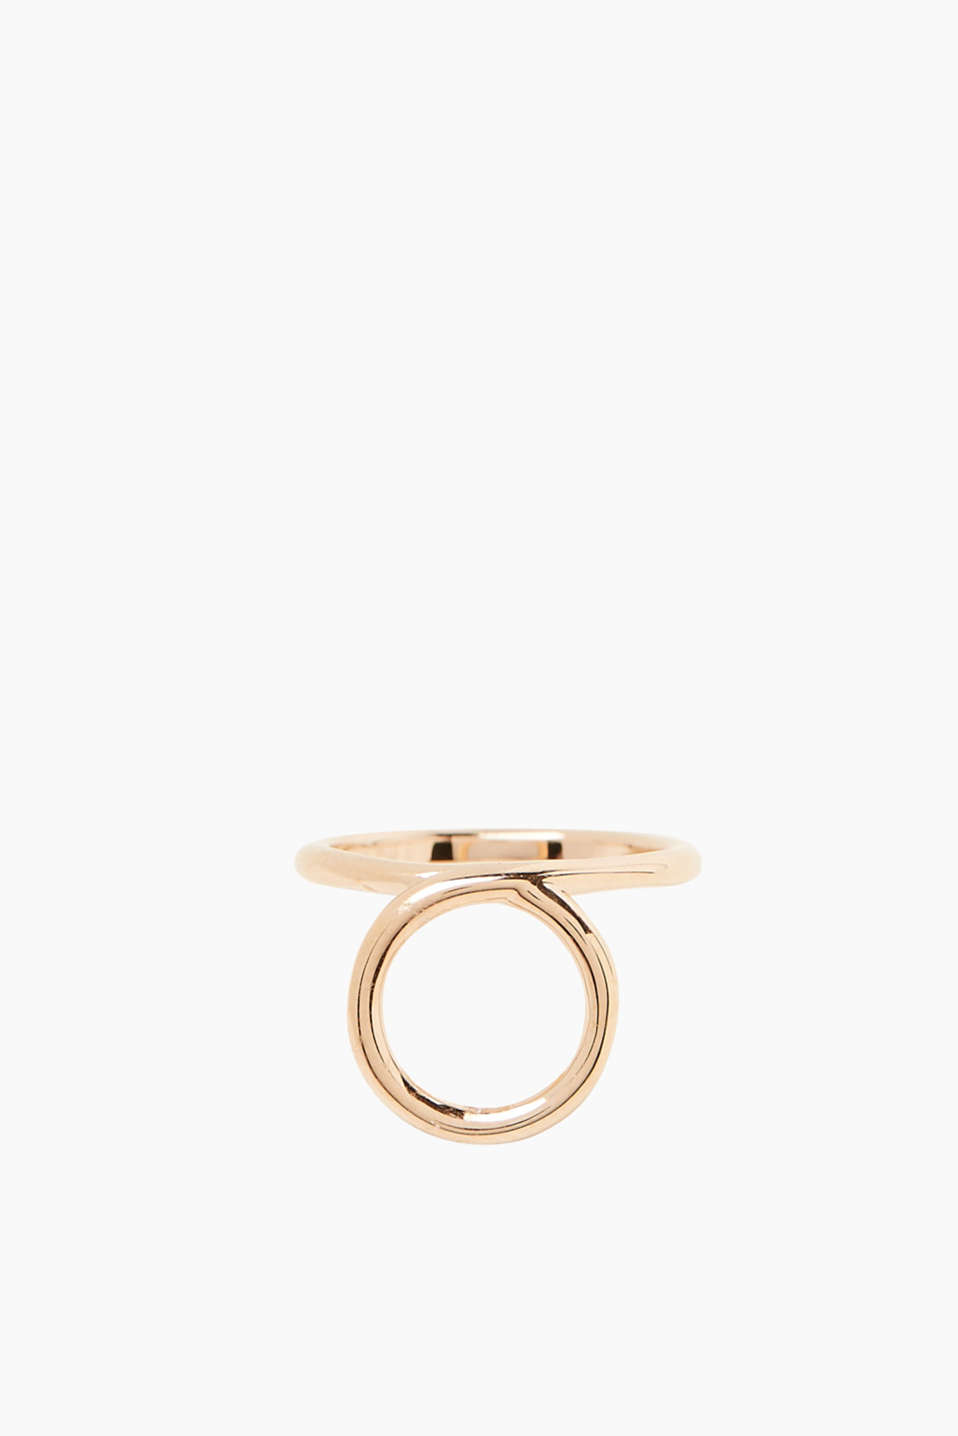 Esprit - Minimalist ring in rose gold